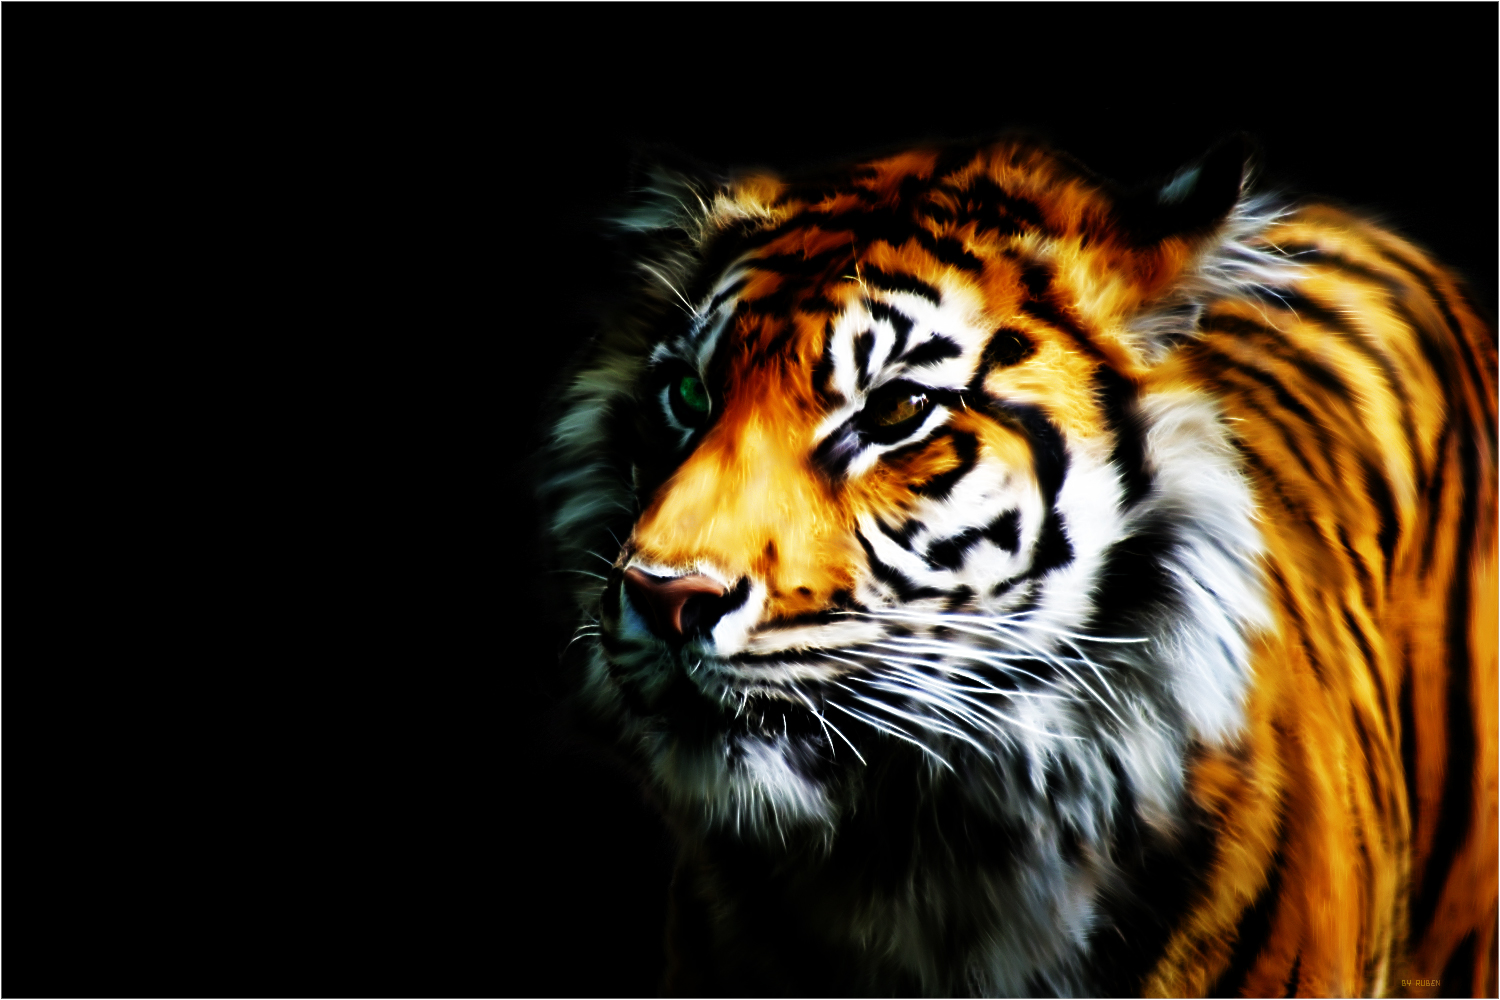 COOL 3D DESKTOP WALLPAPER TIGER 1500x1000